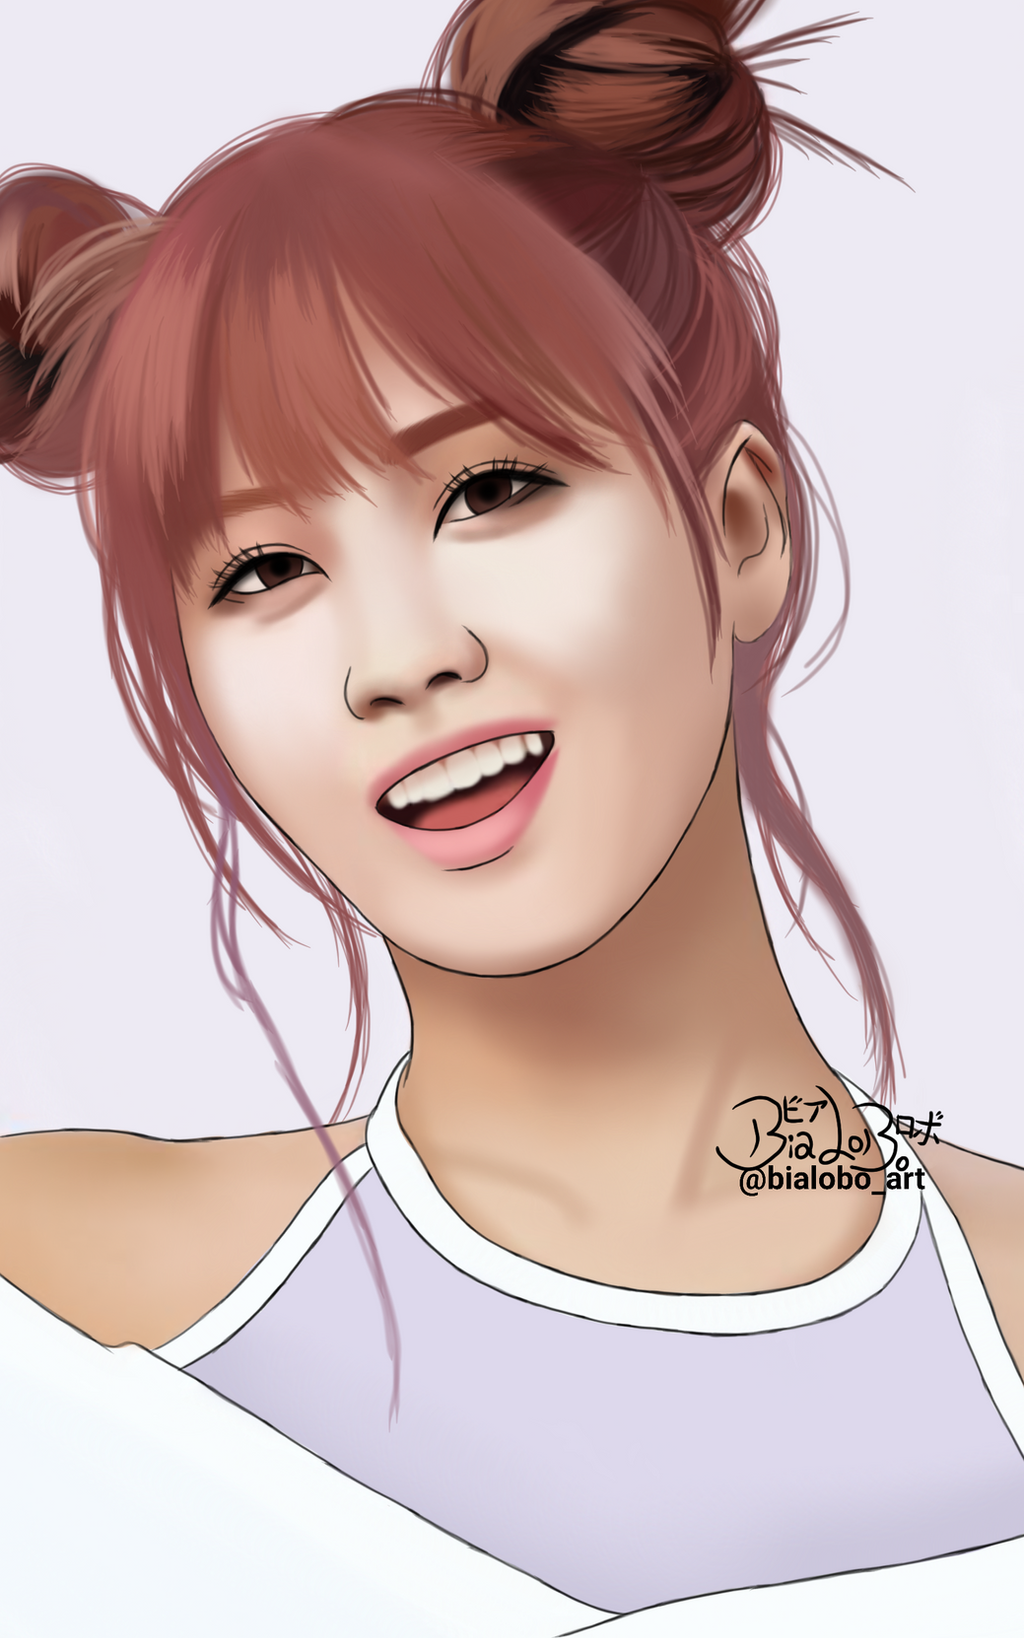 Momo Twice Fanart Bybialobo By Bialobo On Deviantart